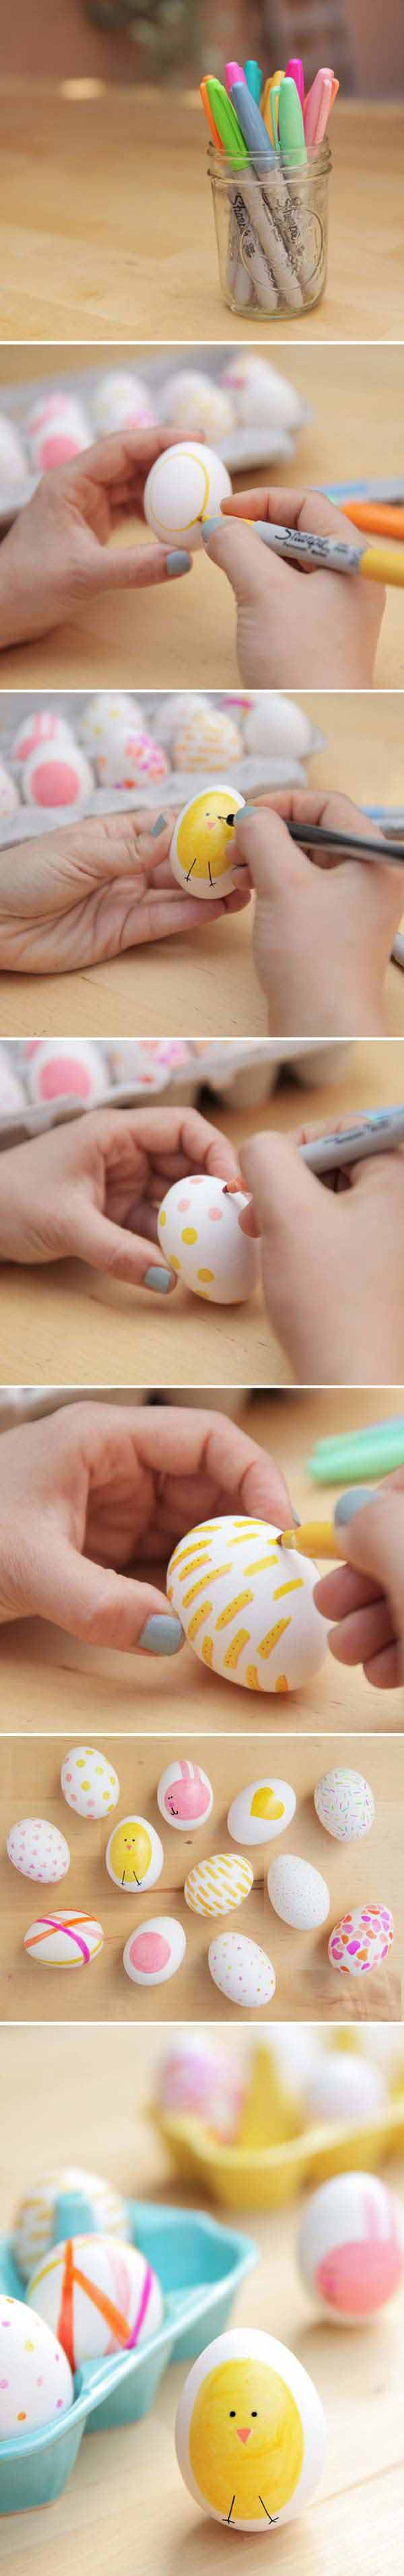 Easter-Crafts-for-Kids-15